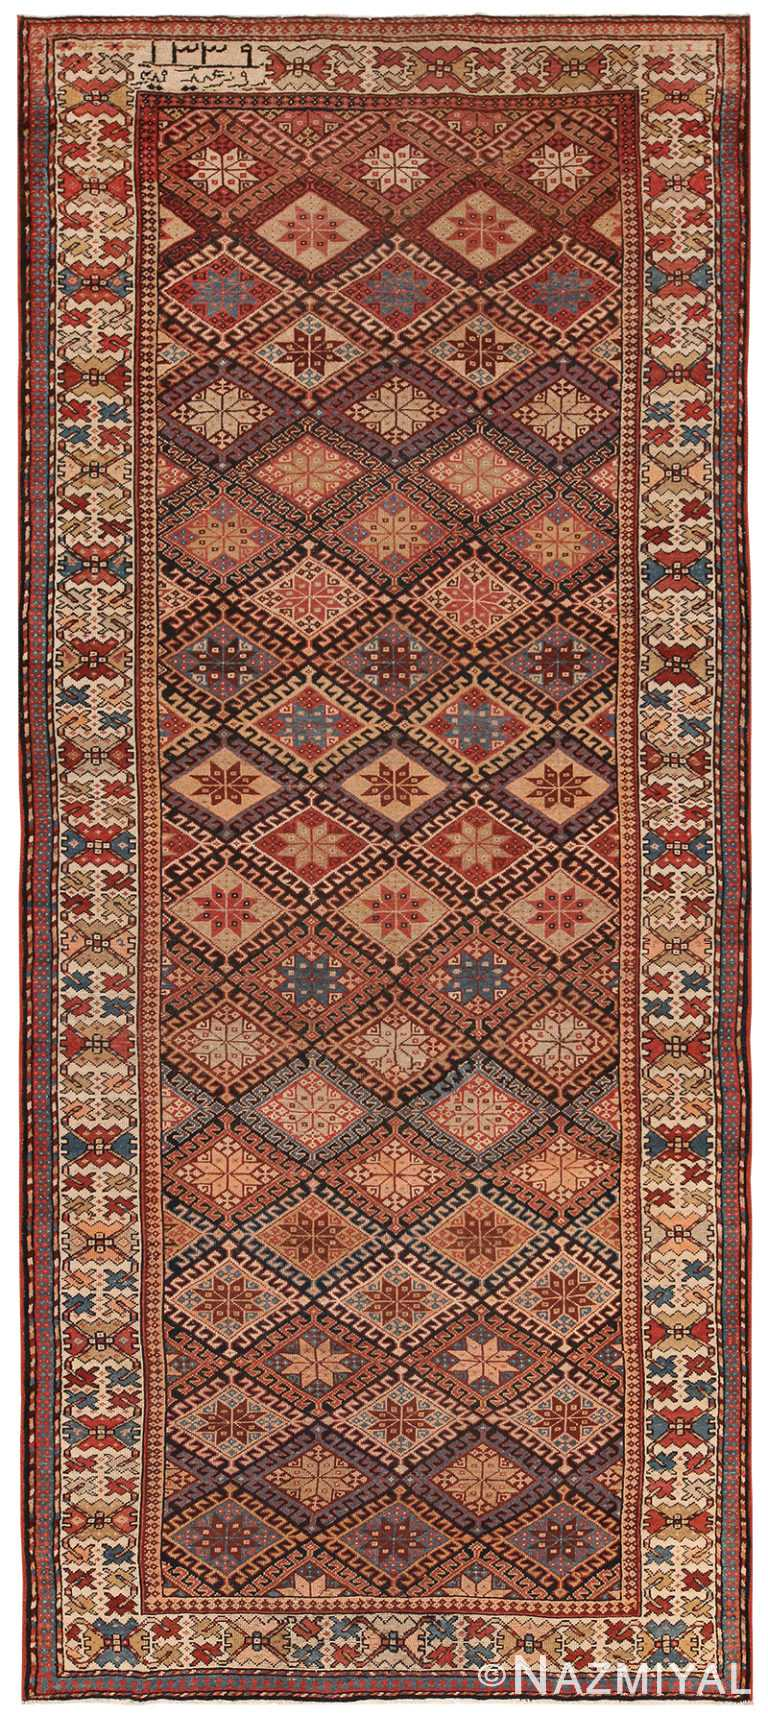 Antique Persian Kurdish Rug 70247 by Nazmiyal NYC